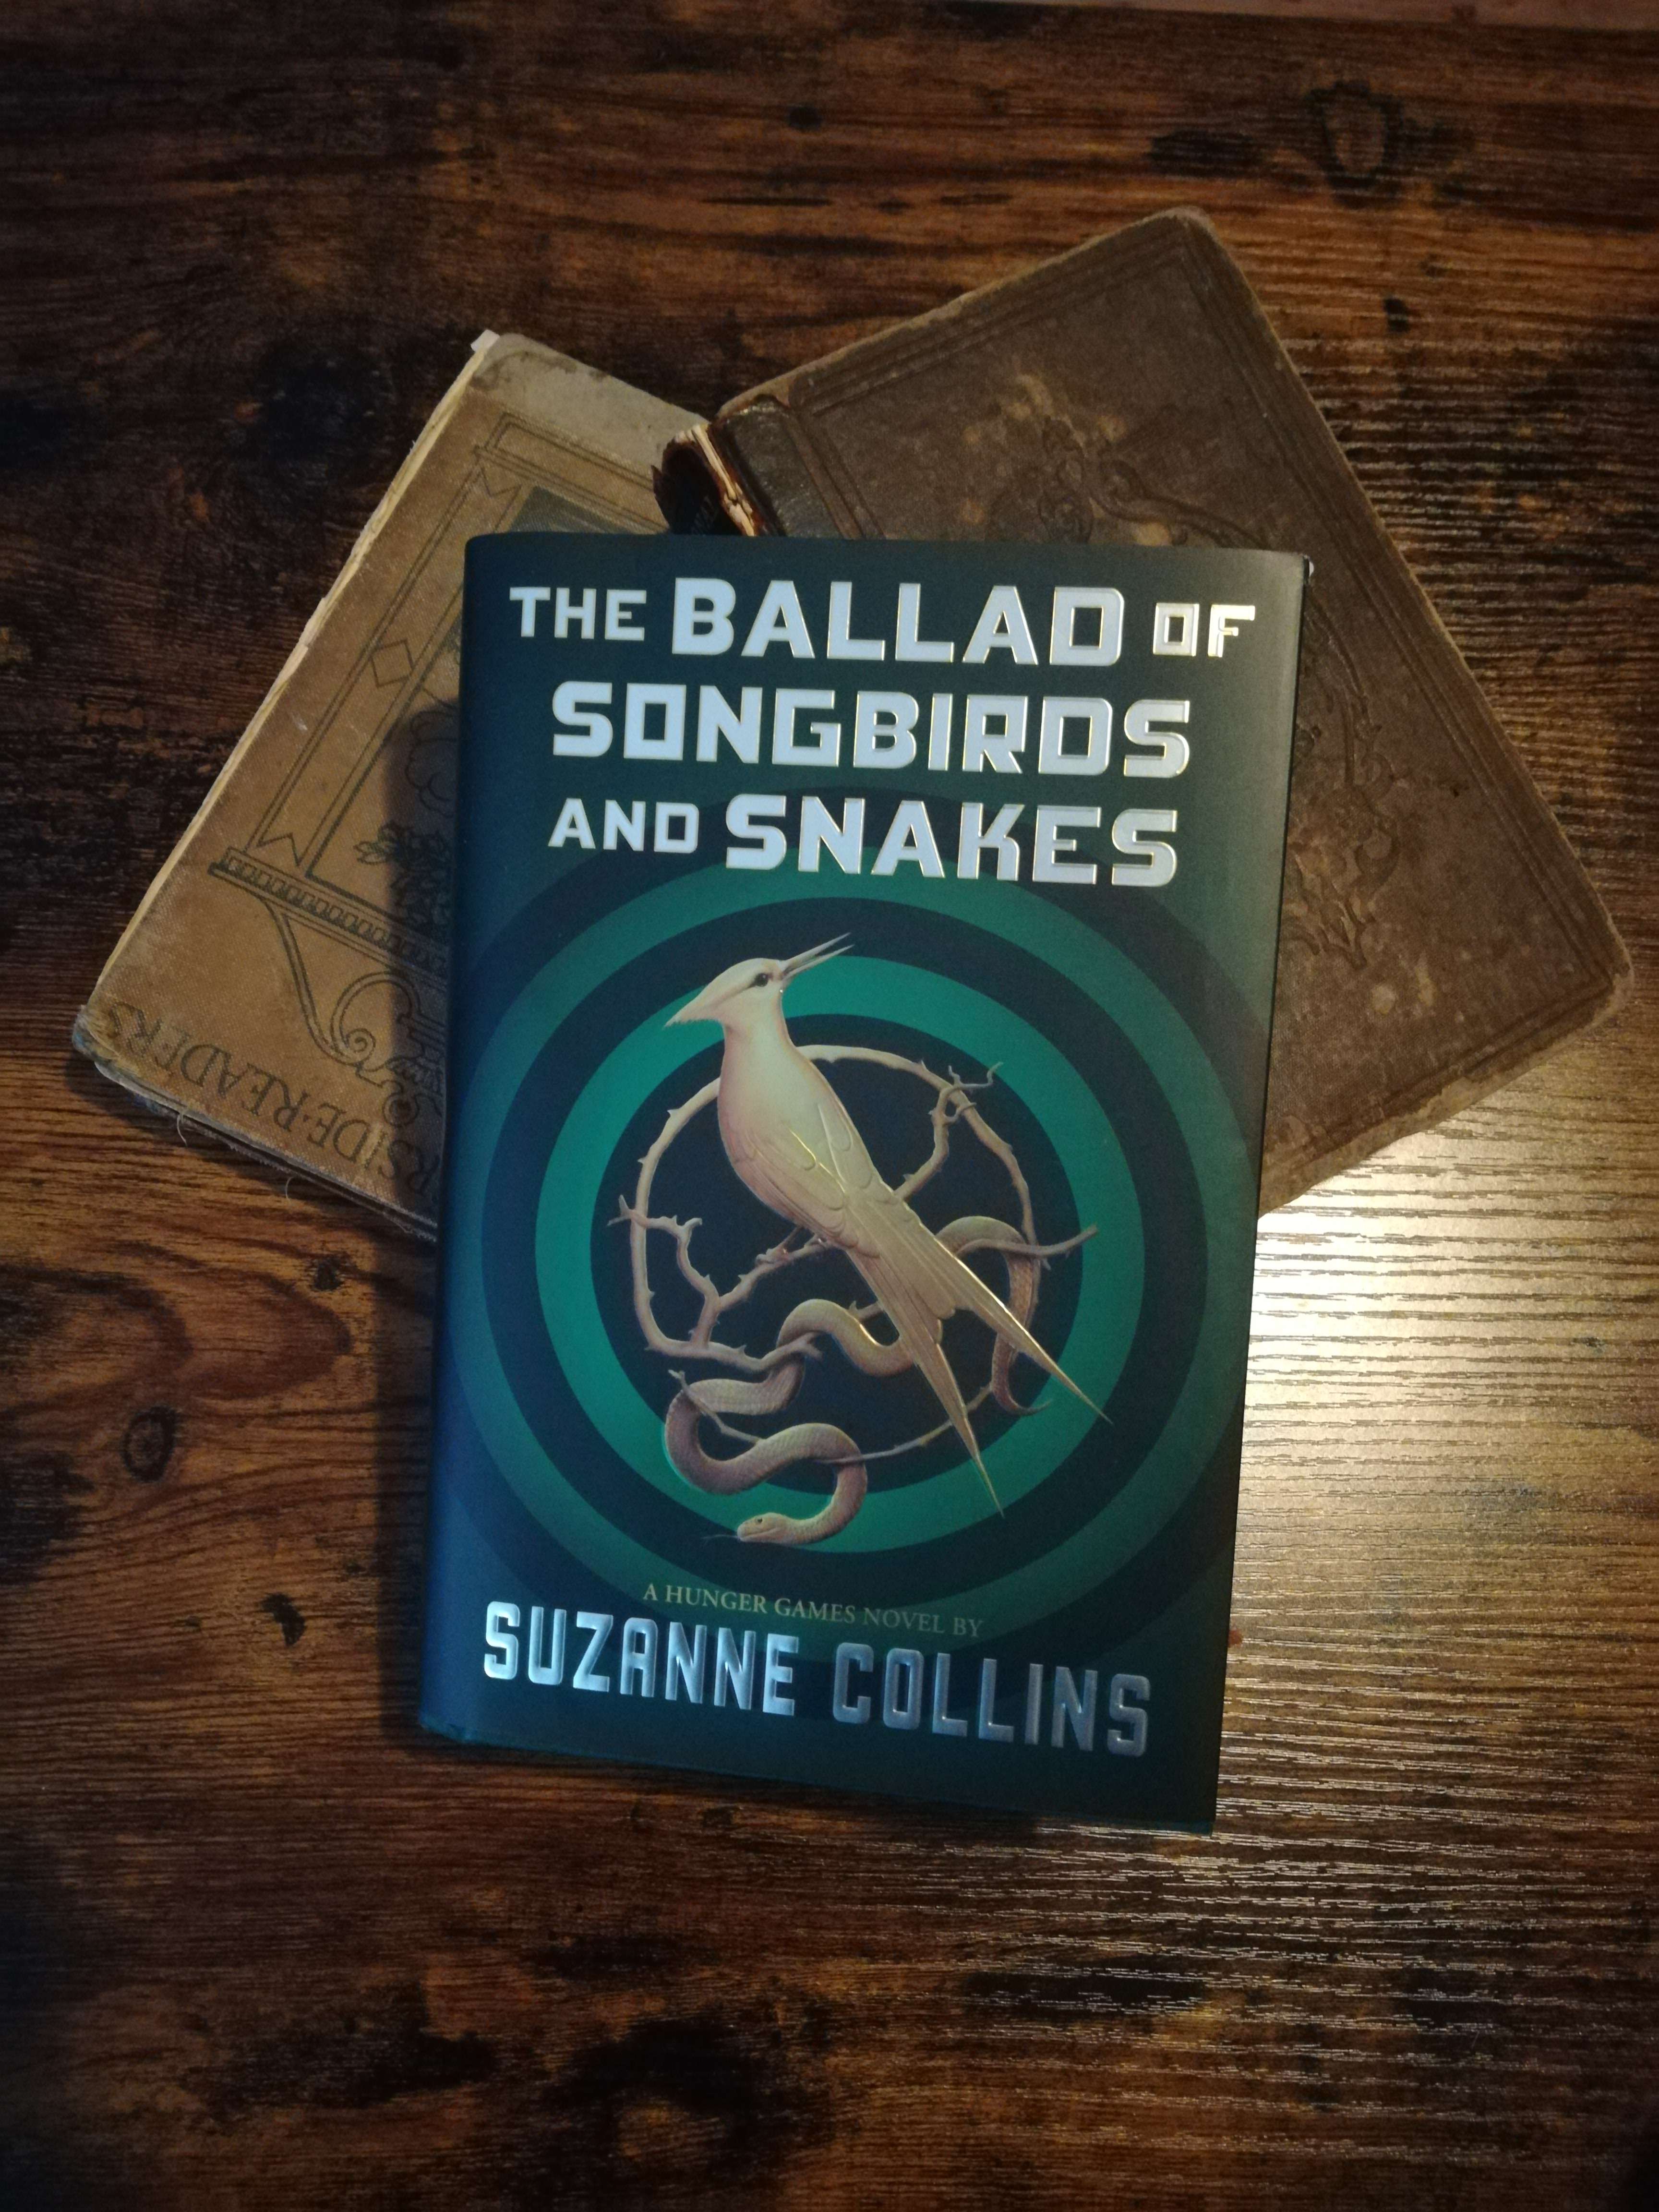 """Image of one of the library """"new Books""""  The Ballad of Songbirds and Snakes by Suzanne Collins a prequel book to the Hunger Games series"""